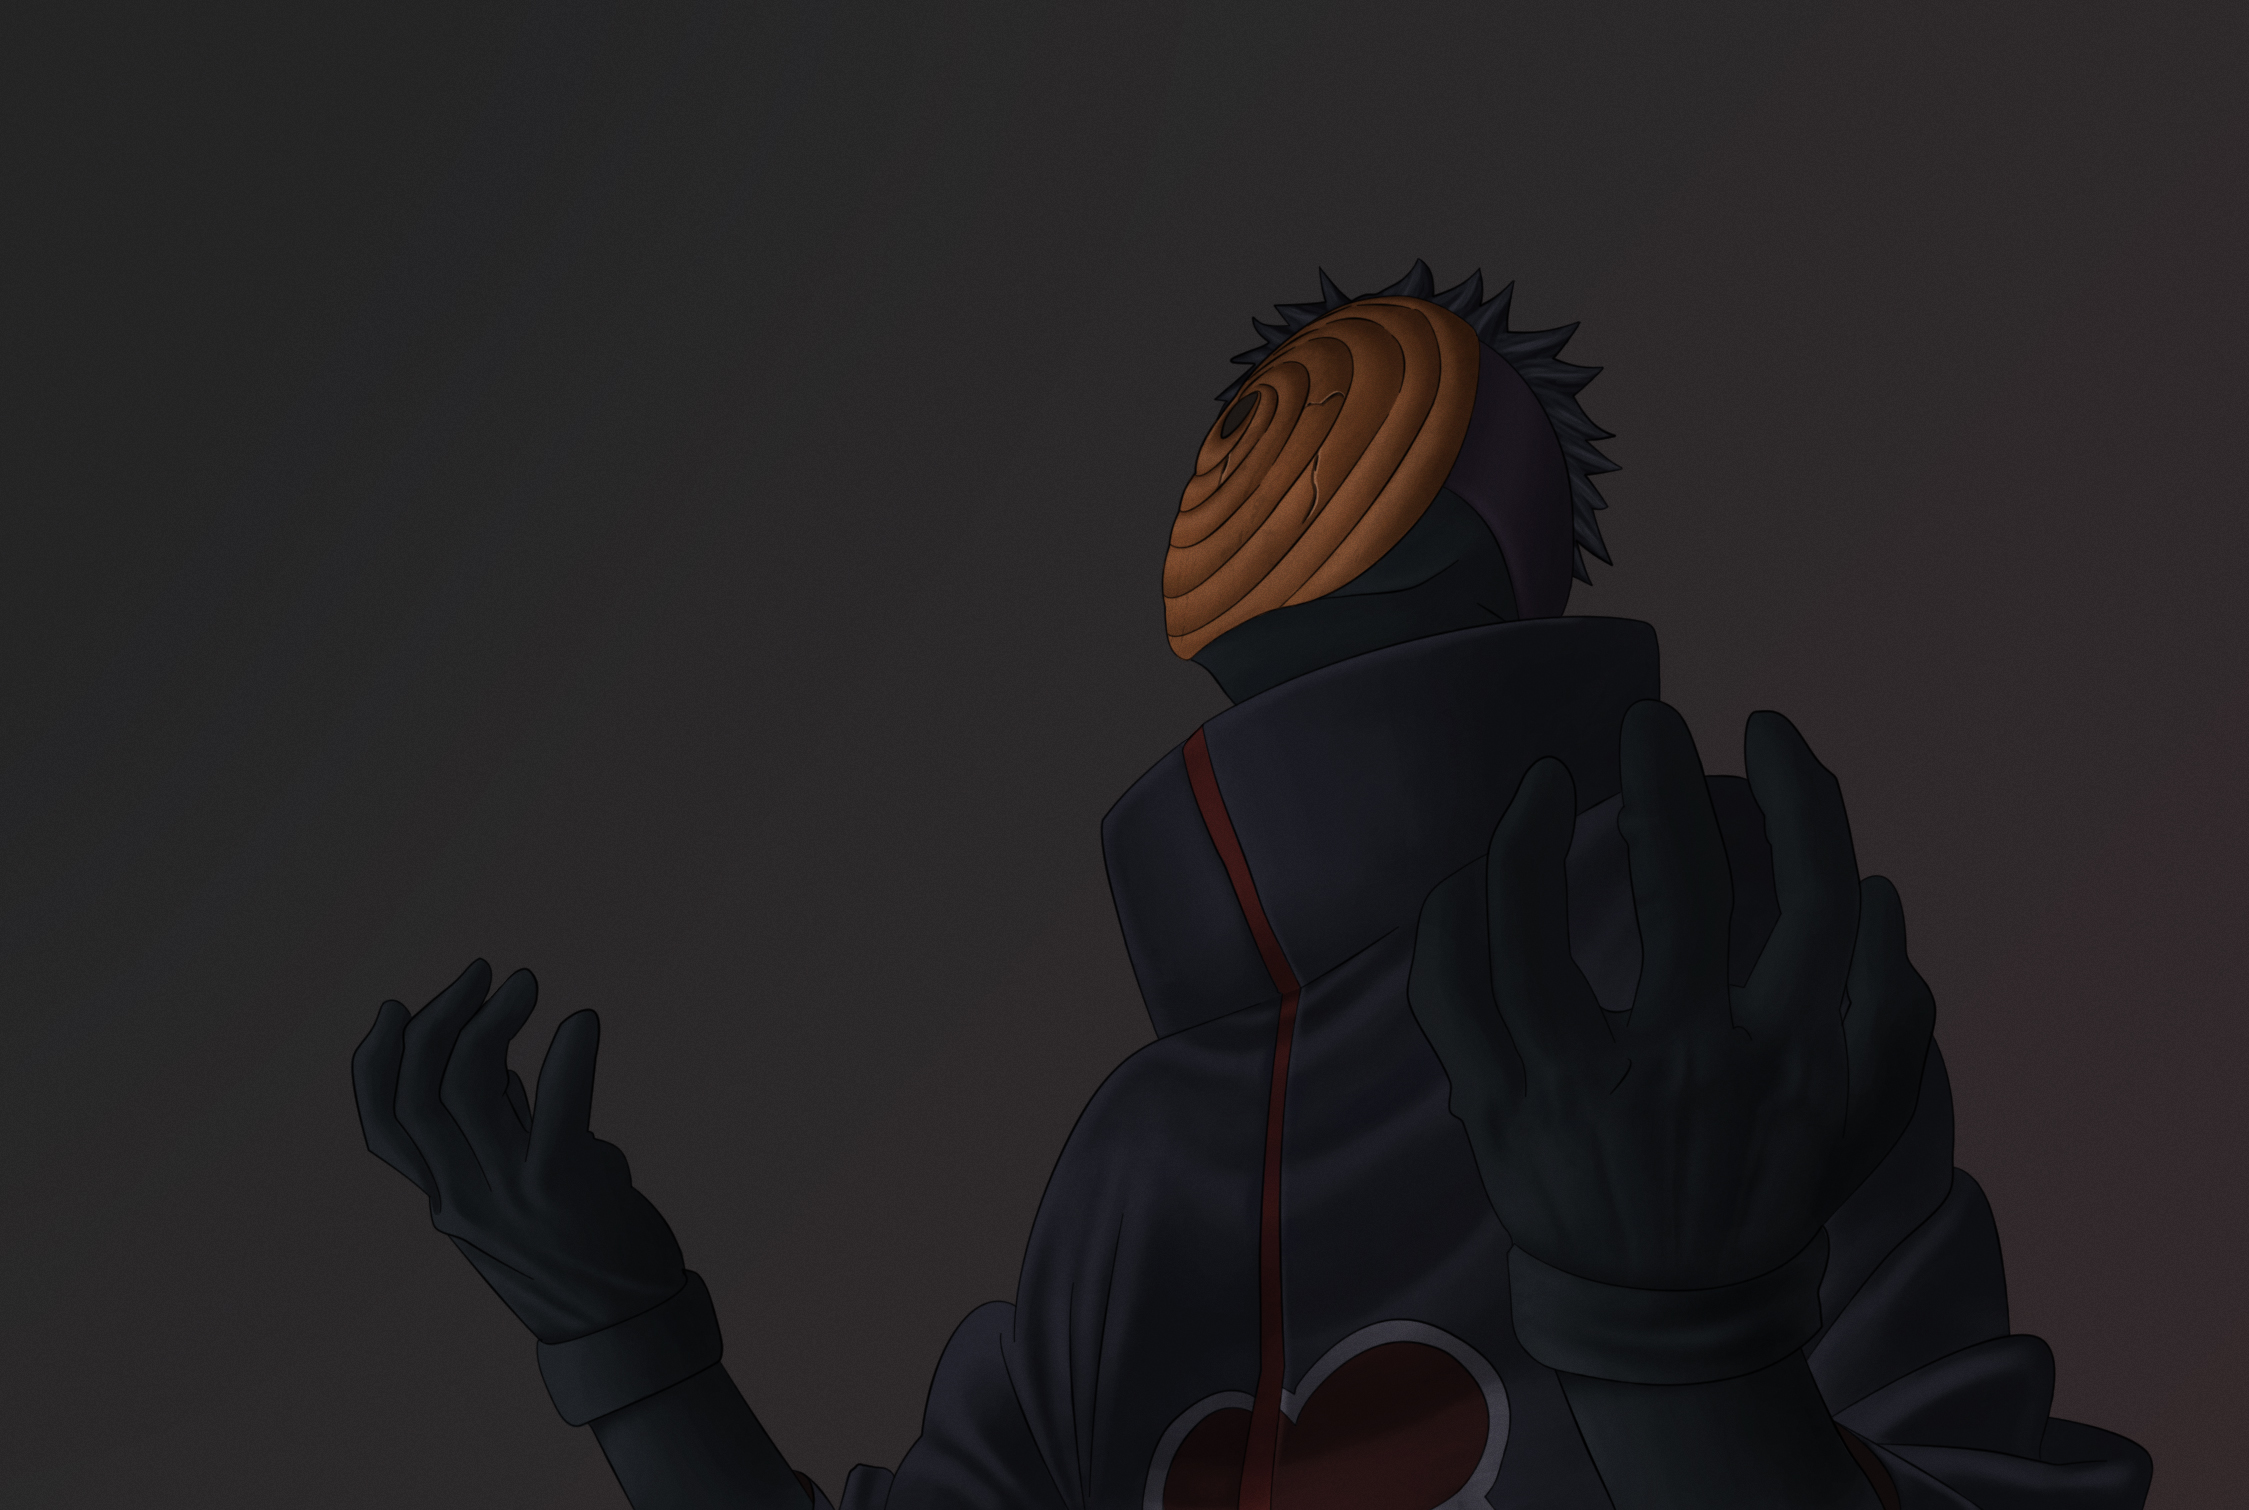 obito uchiha wallpaper desktop